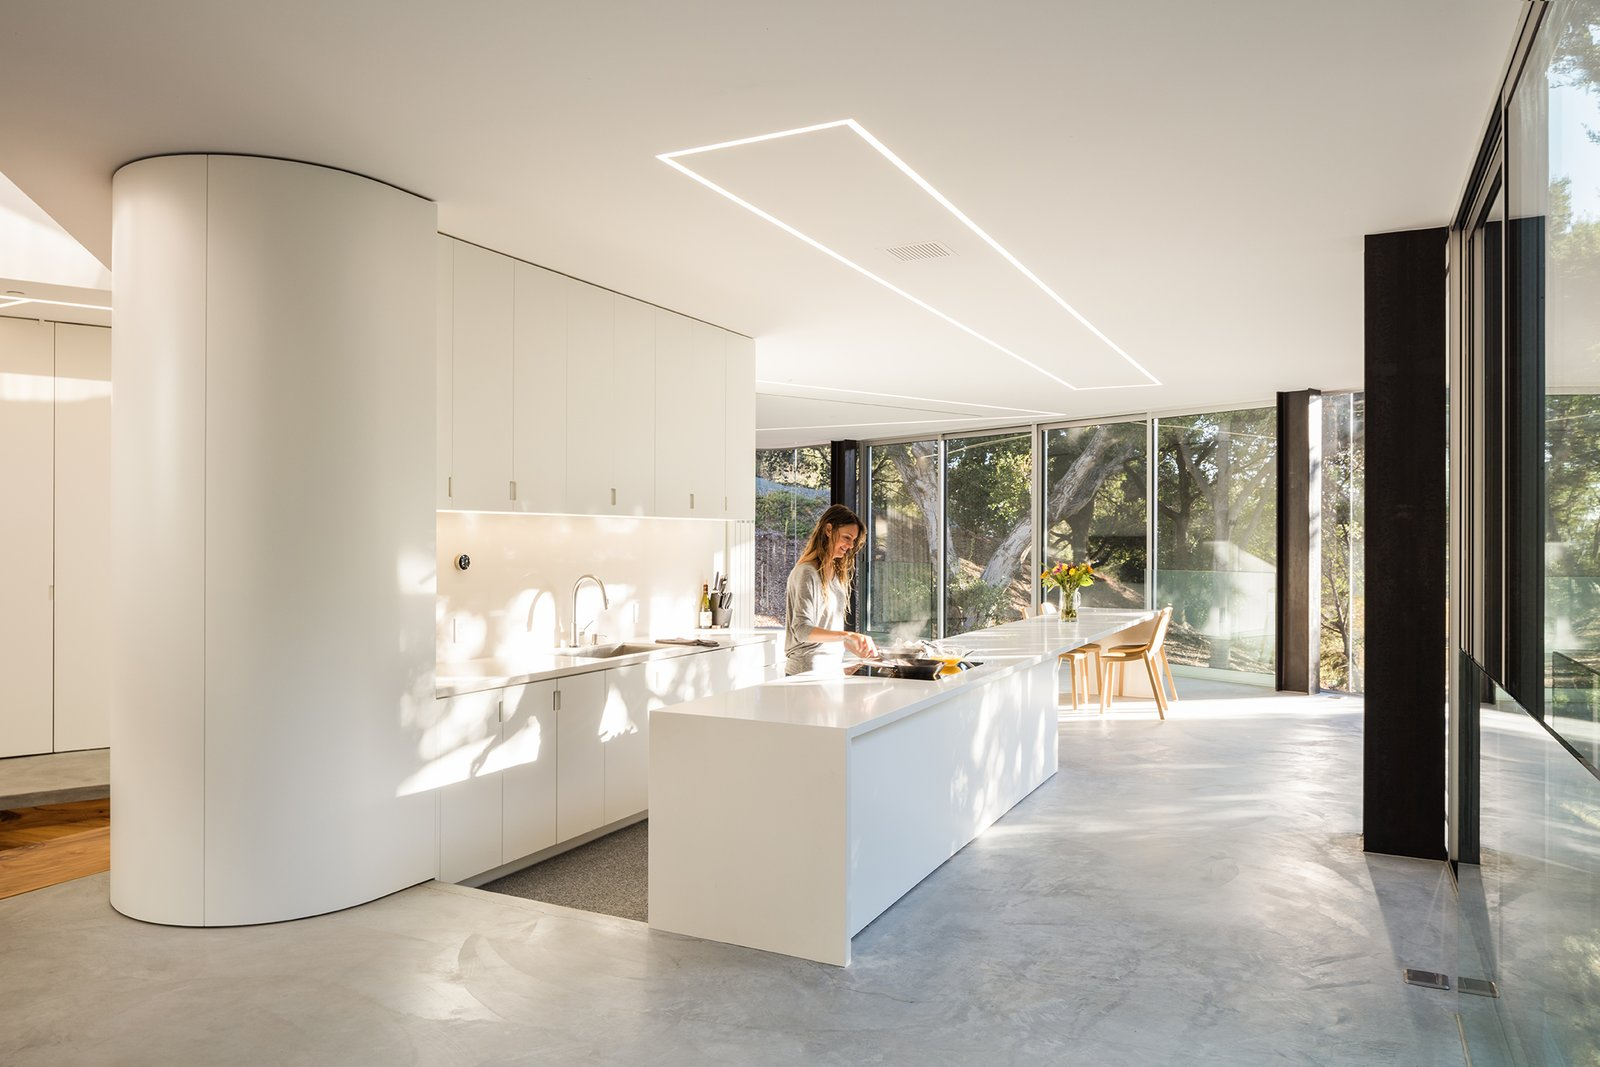 These 30 White Kitchens Are Anything But Ordinary - Dwell